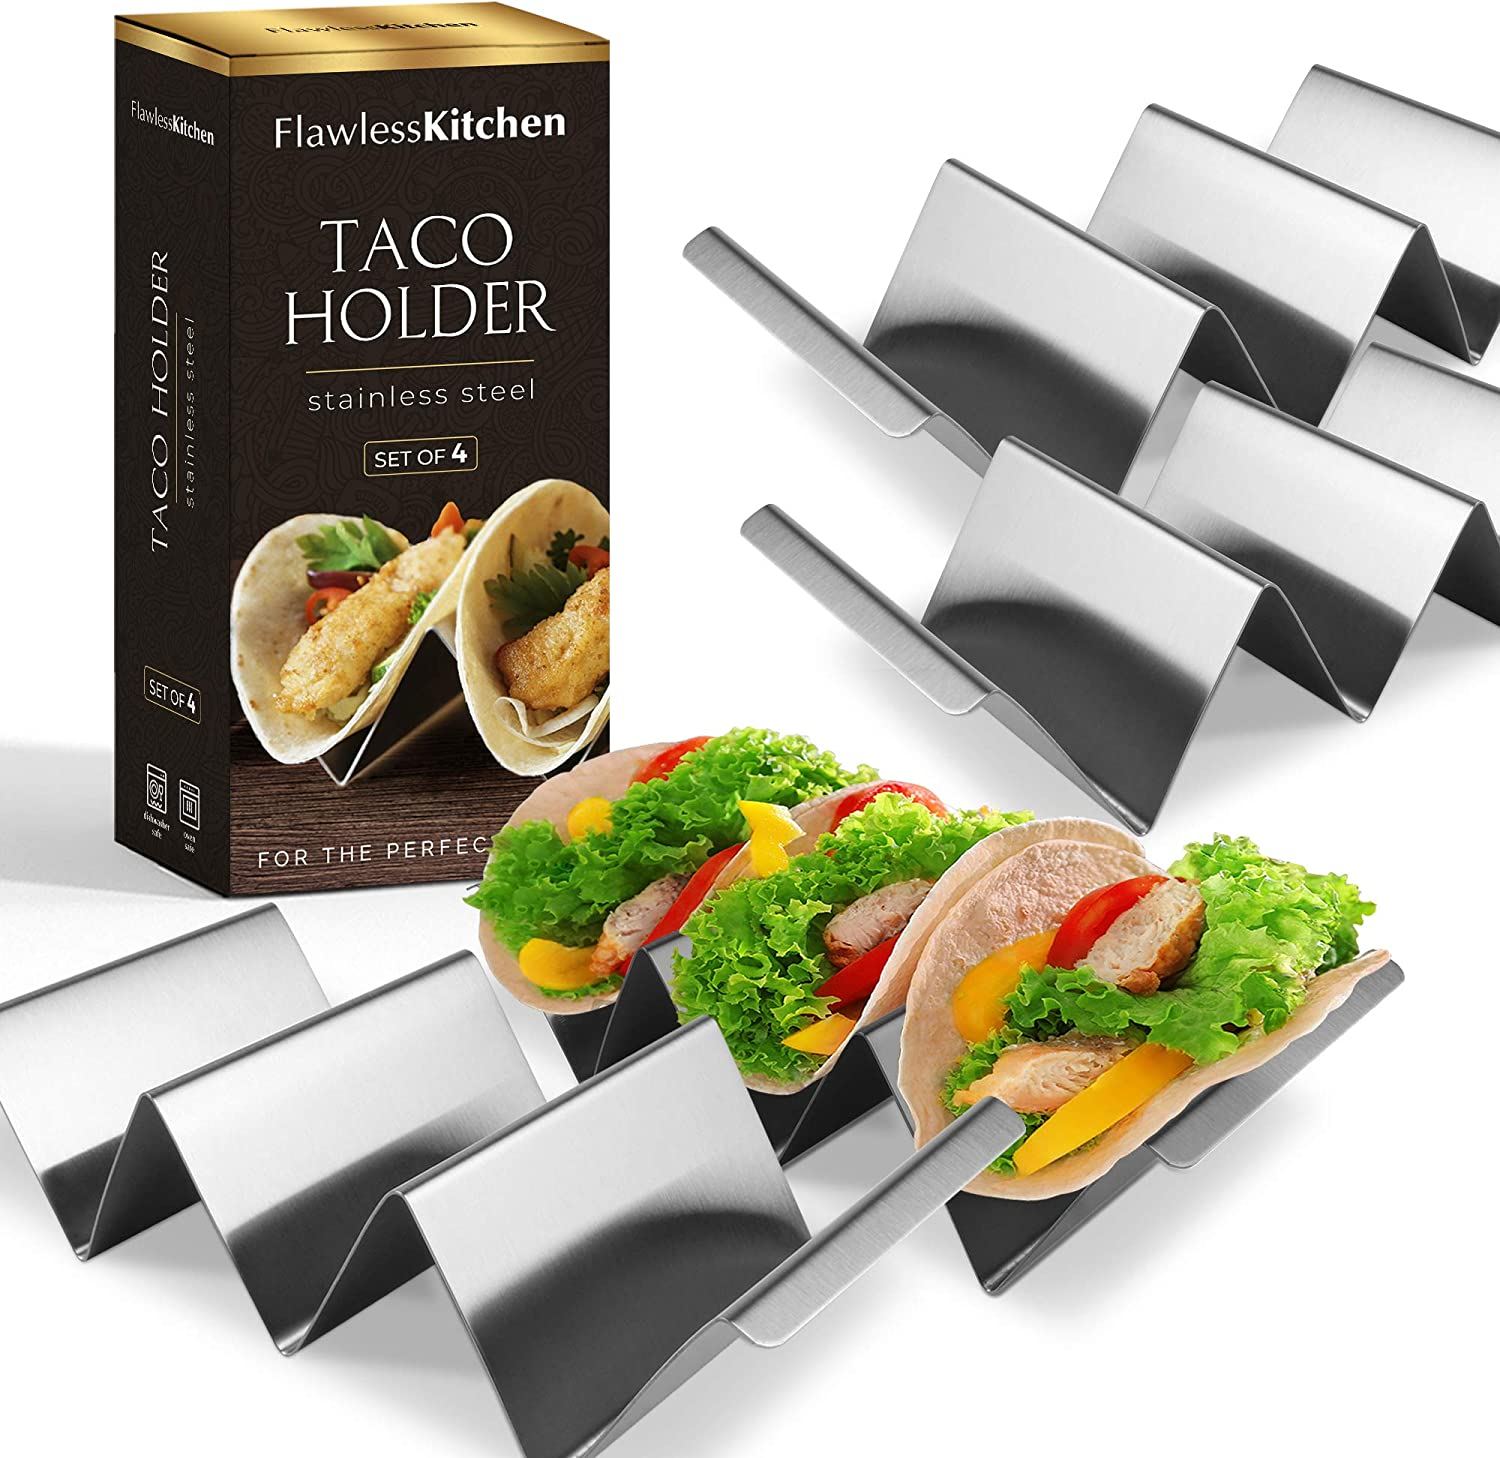 Premium Taco Holder (4 Pack) by Flawless Kitchen - Serve Your Taco Plates With Our Stylish Stands - Stainless Steel Rack Holds Up To 3 Mini Or Large Shells - Oven, Baking, Grill & Dishwasher Safe